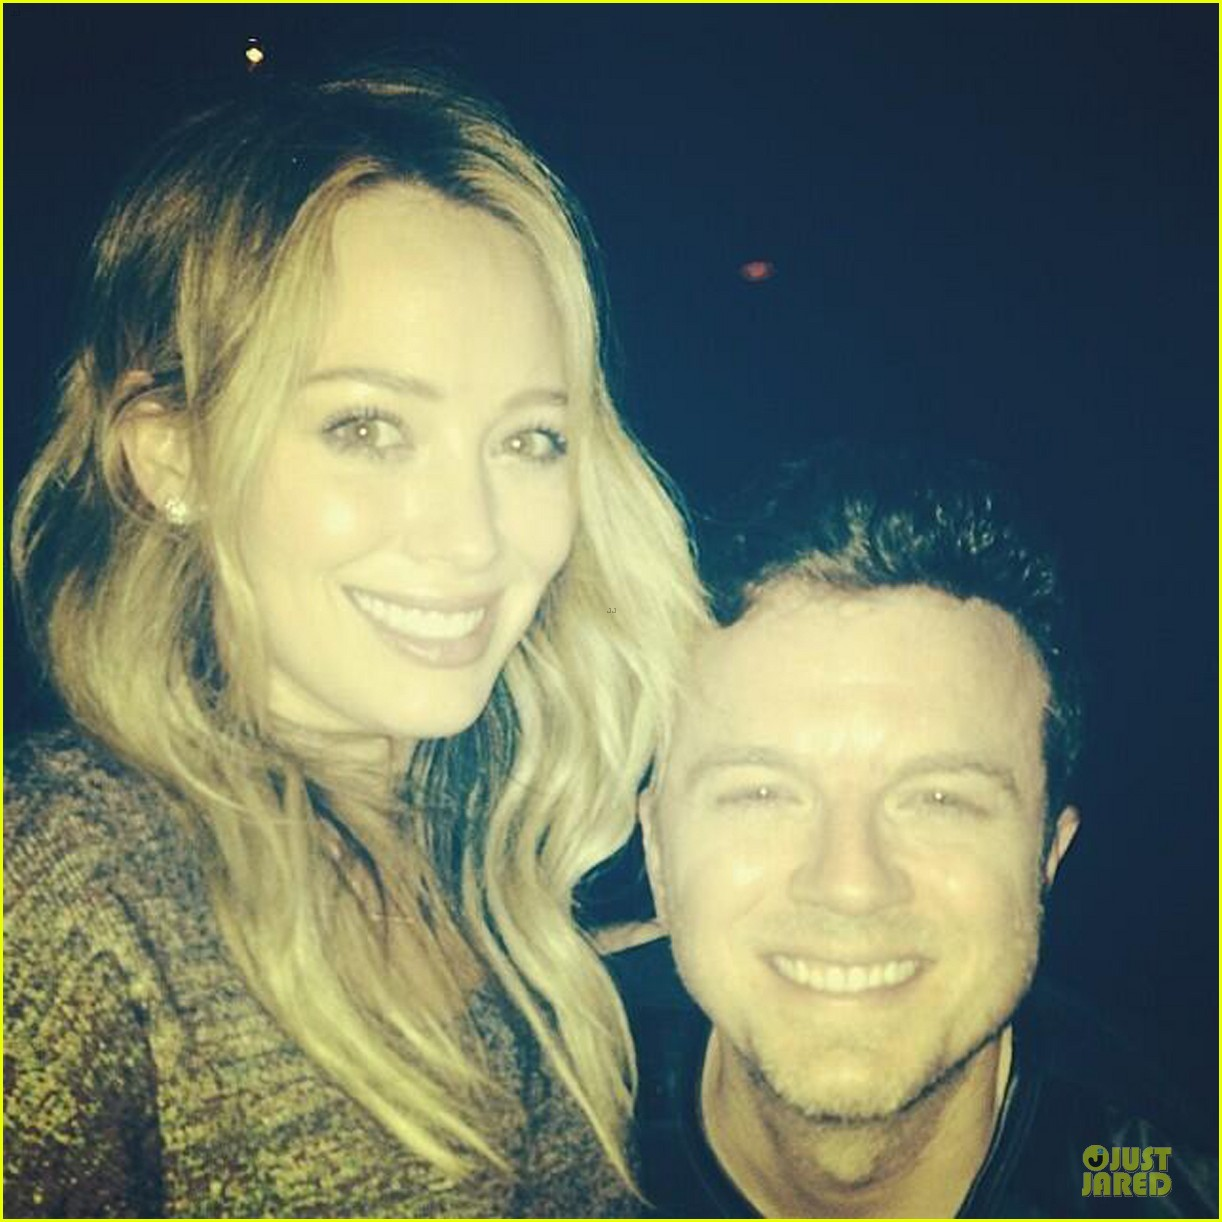 hilary duff ive known jojo wright since i was a baybay 05